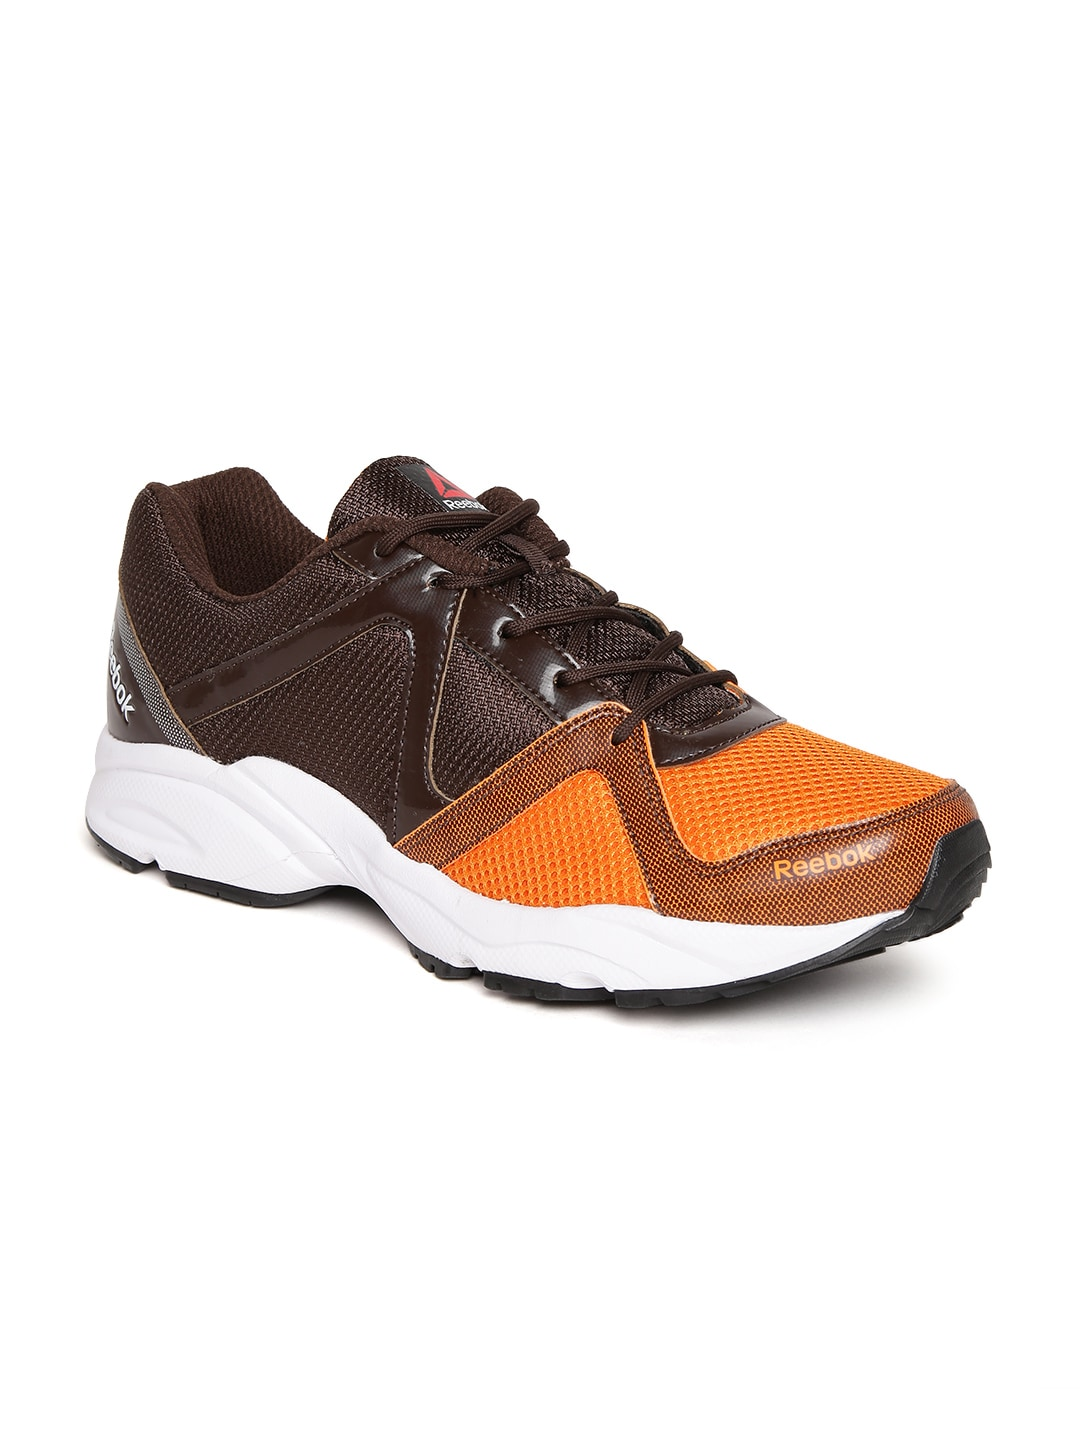 93c72a8c7b01 Reebok Shoes - Buy Reebok Shoes For Men   Women Online